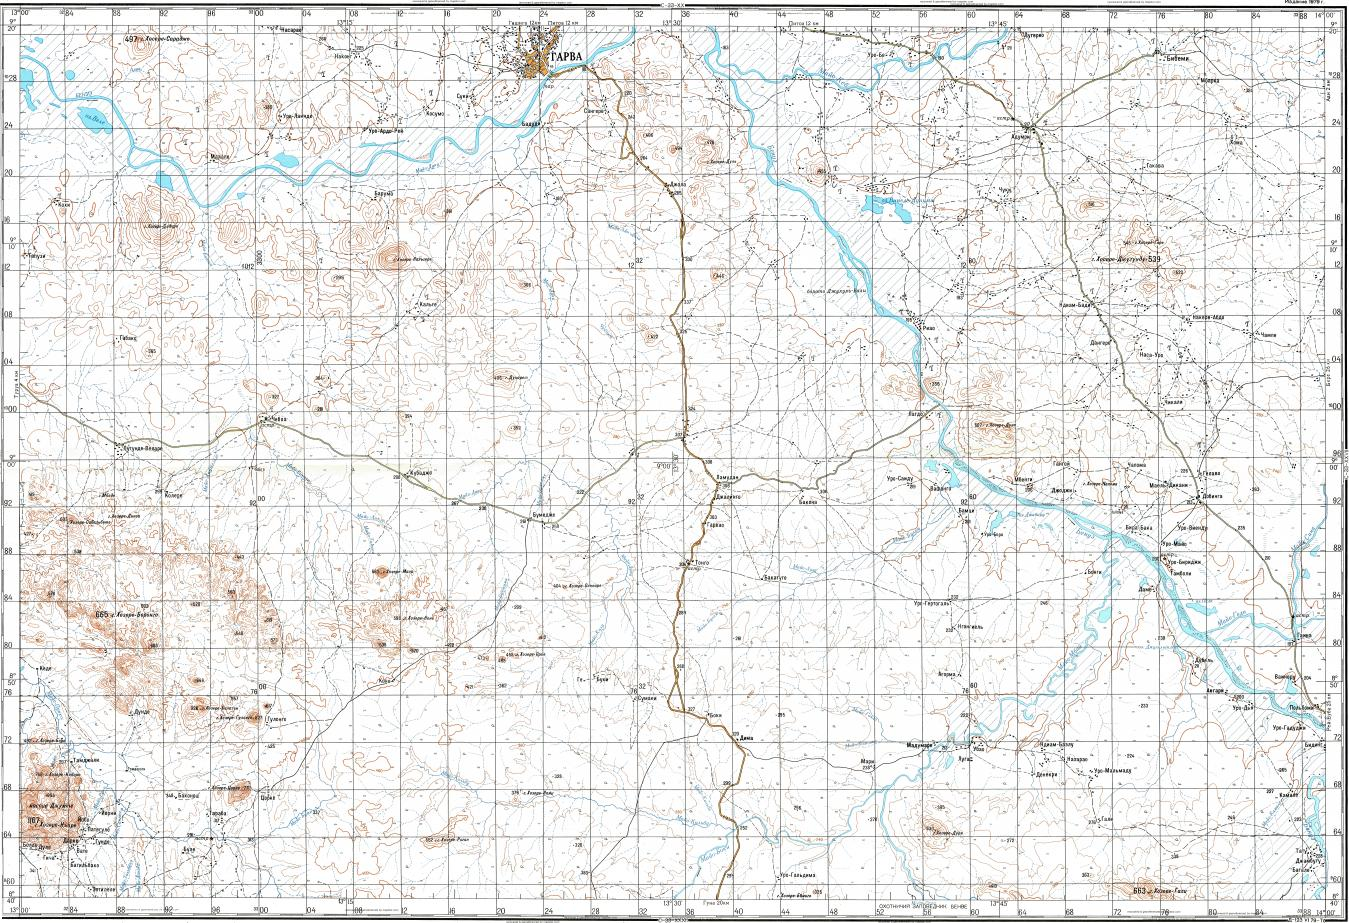 Download topographic map in area of Garoua Tcheboa mapstorcom